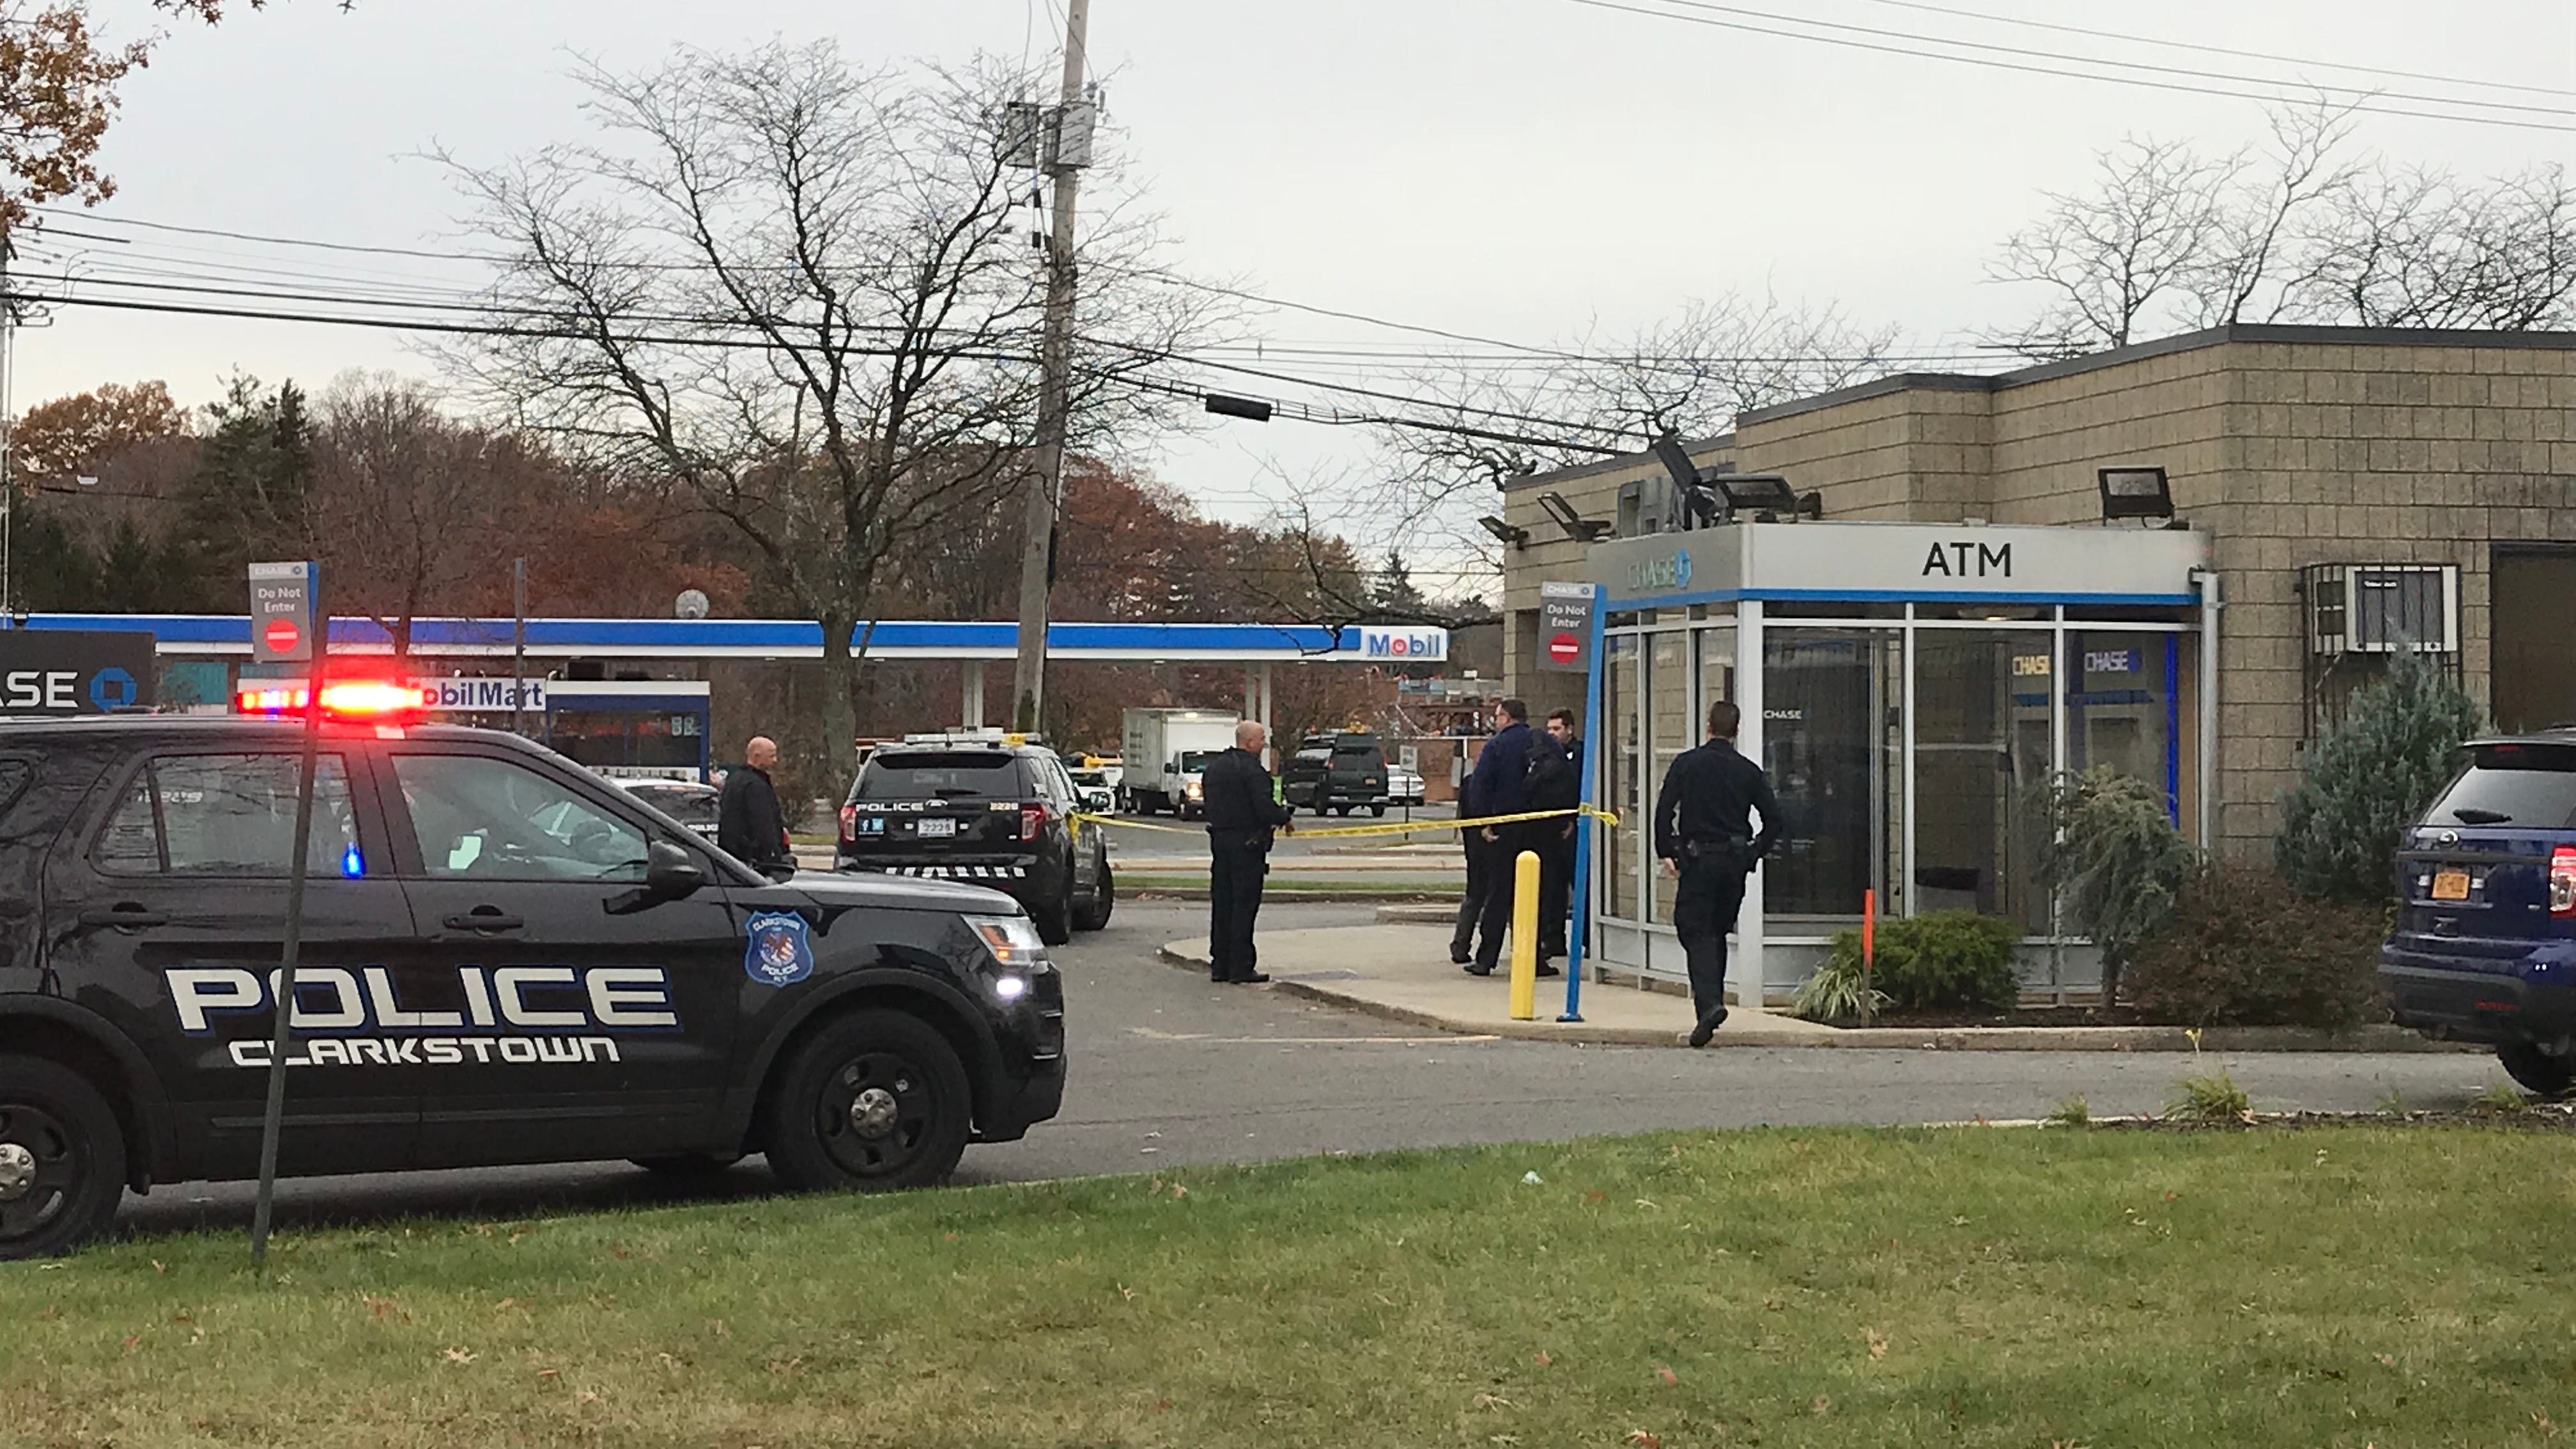 Nanuet: Police investigate possible bank robbery